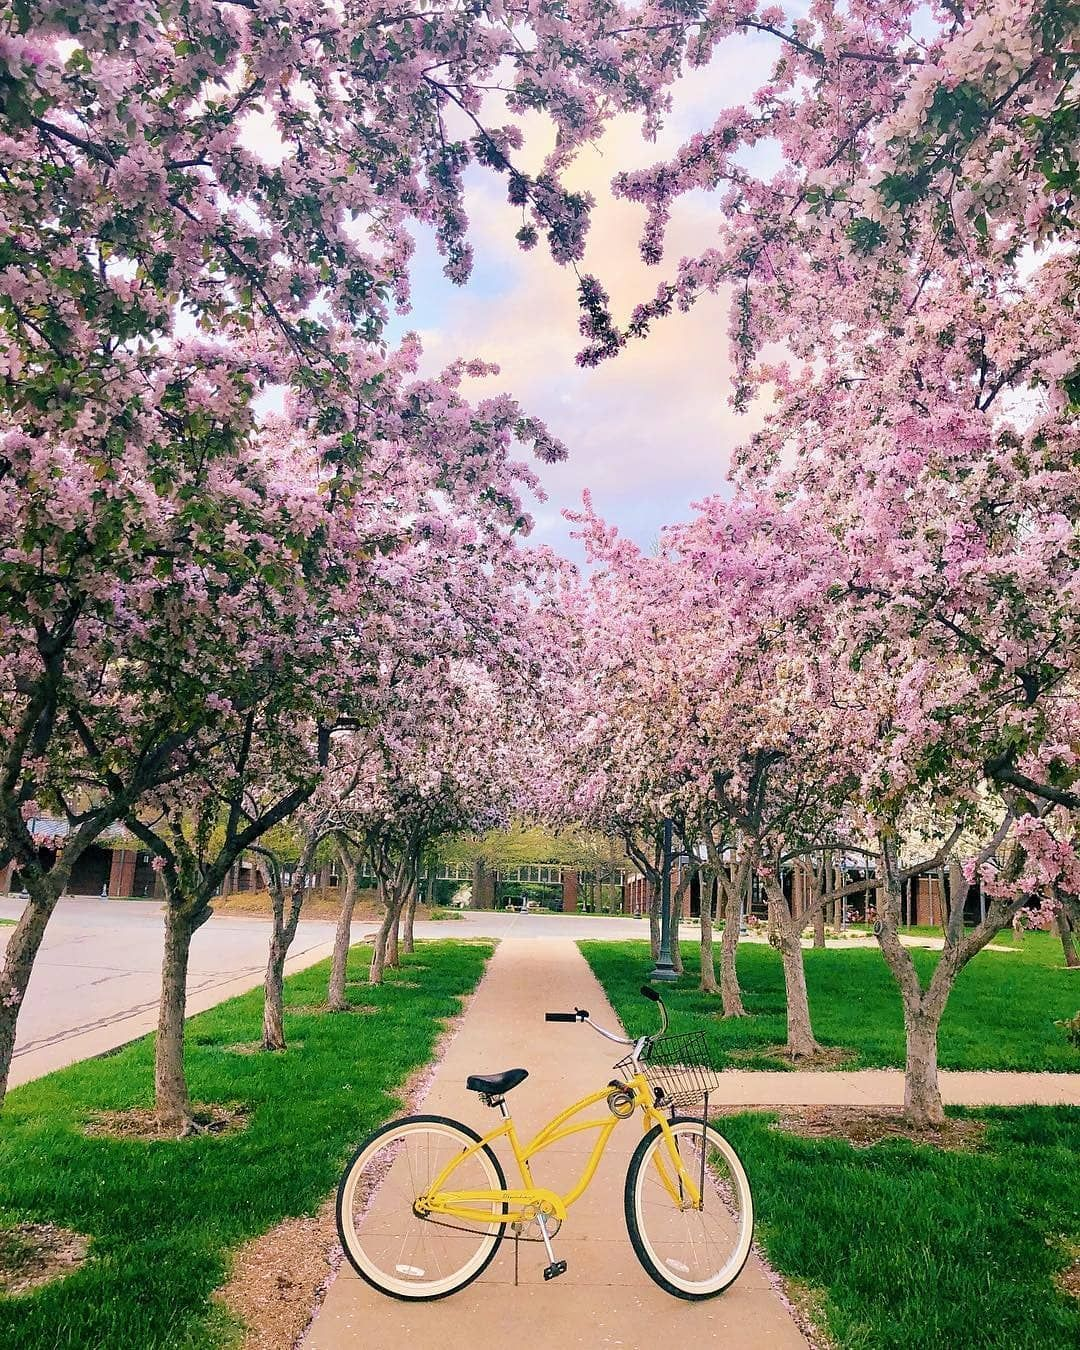 845 Likes 19 Comments The Best Of Kansas City Best Of Kc On Instagram Spring Winds May Blow The Blooms Away Cherry Blossom Tree Blossom Trees Blossom